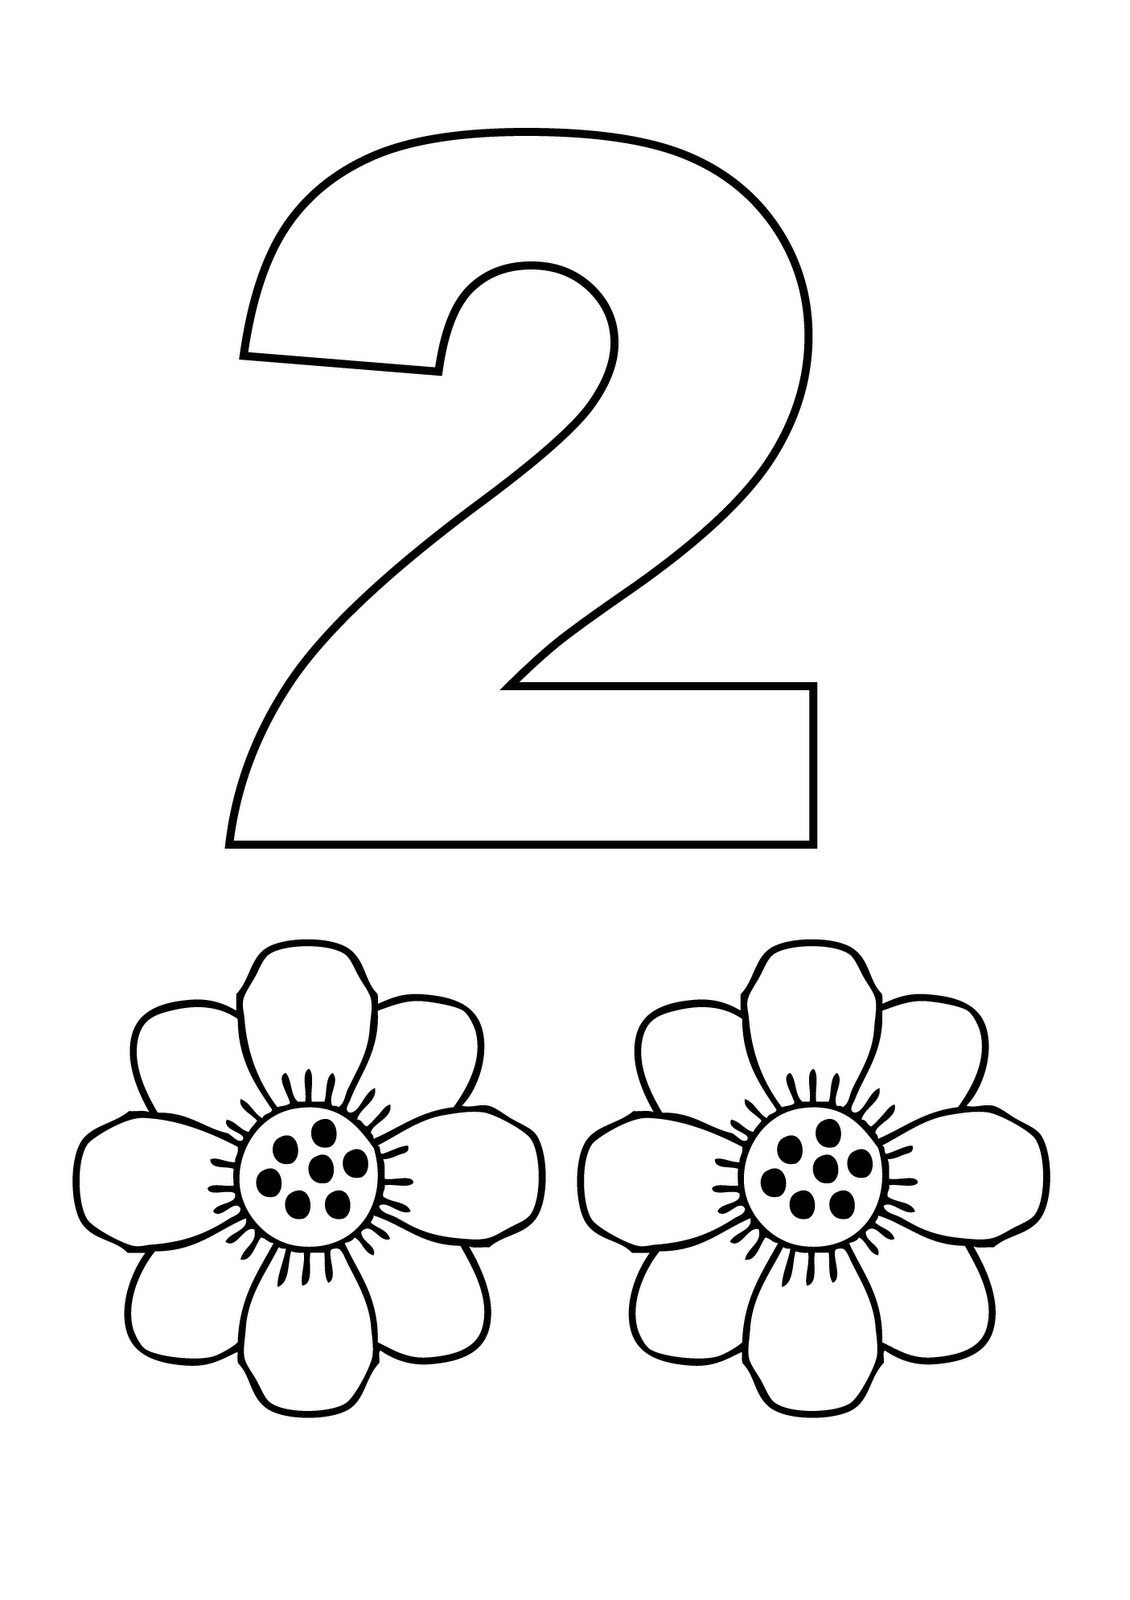 coloring page number 2 free printable number 2 template coloring page 2 number page coloring